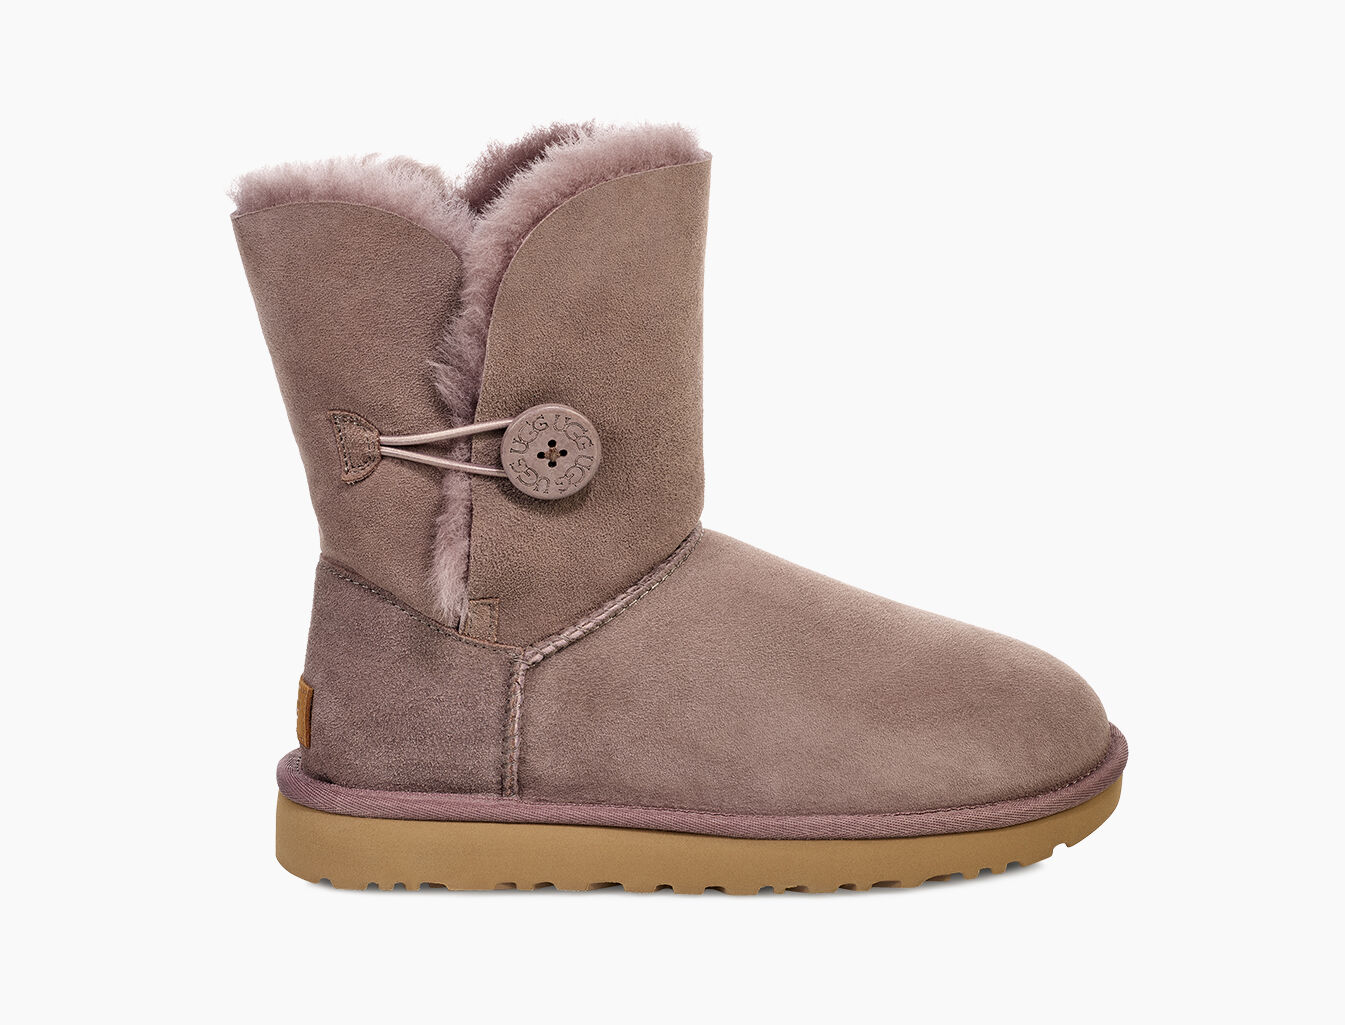 ugg official women s bailey button ii boots ugg com rh ugg com ugg bailey button triplet womens boots on sale